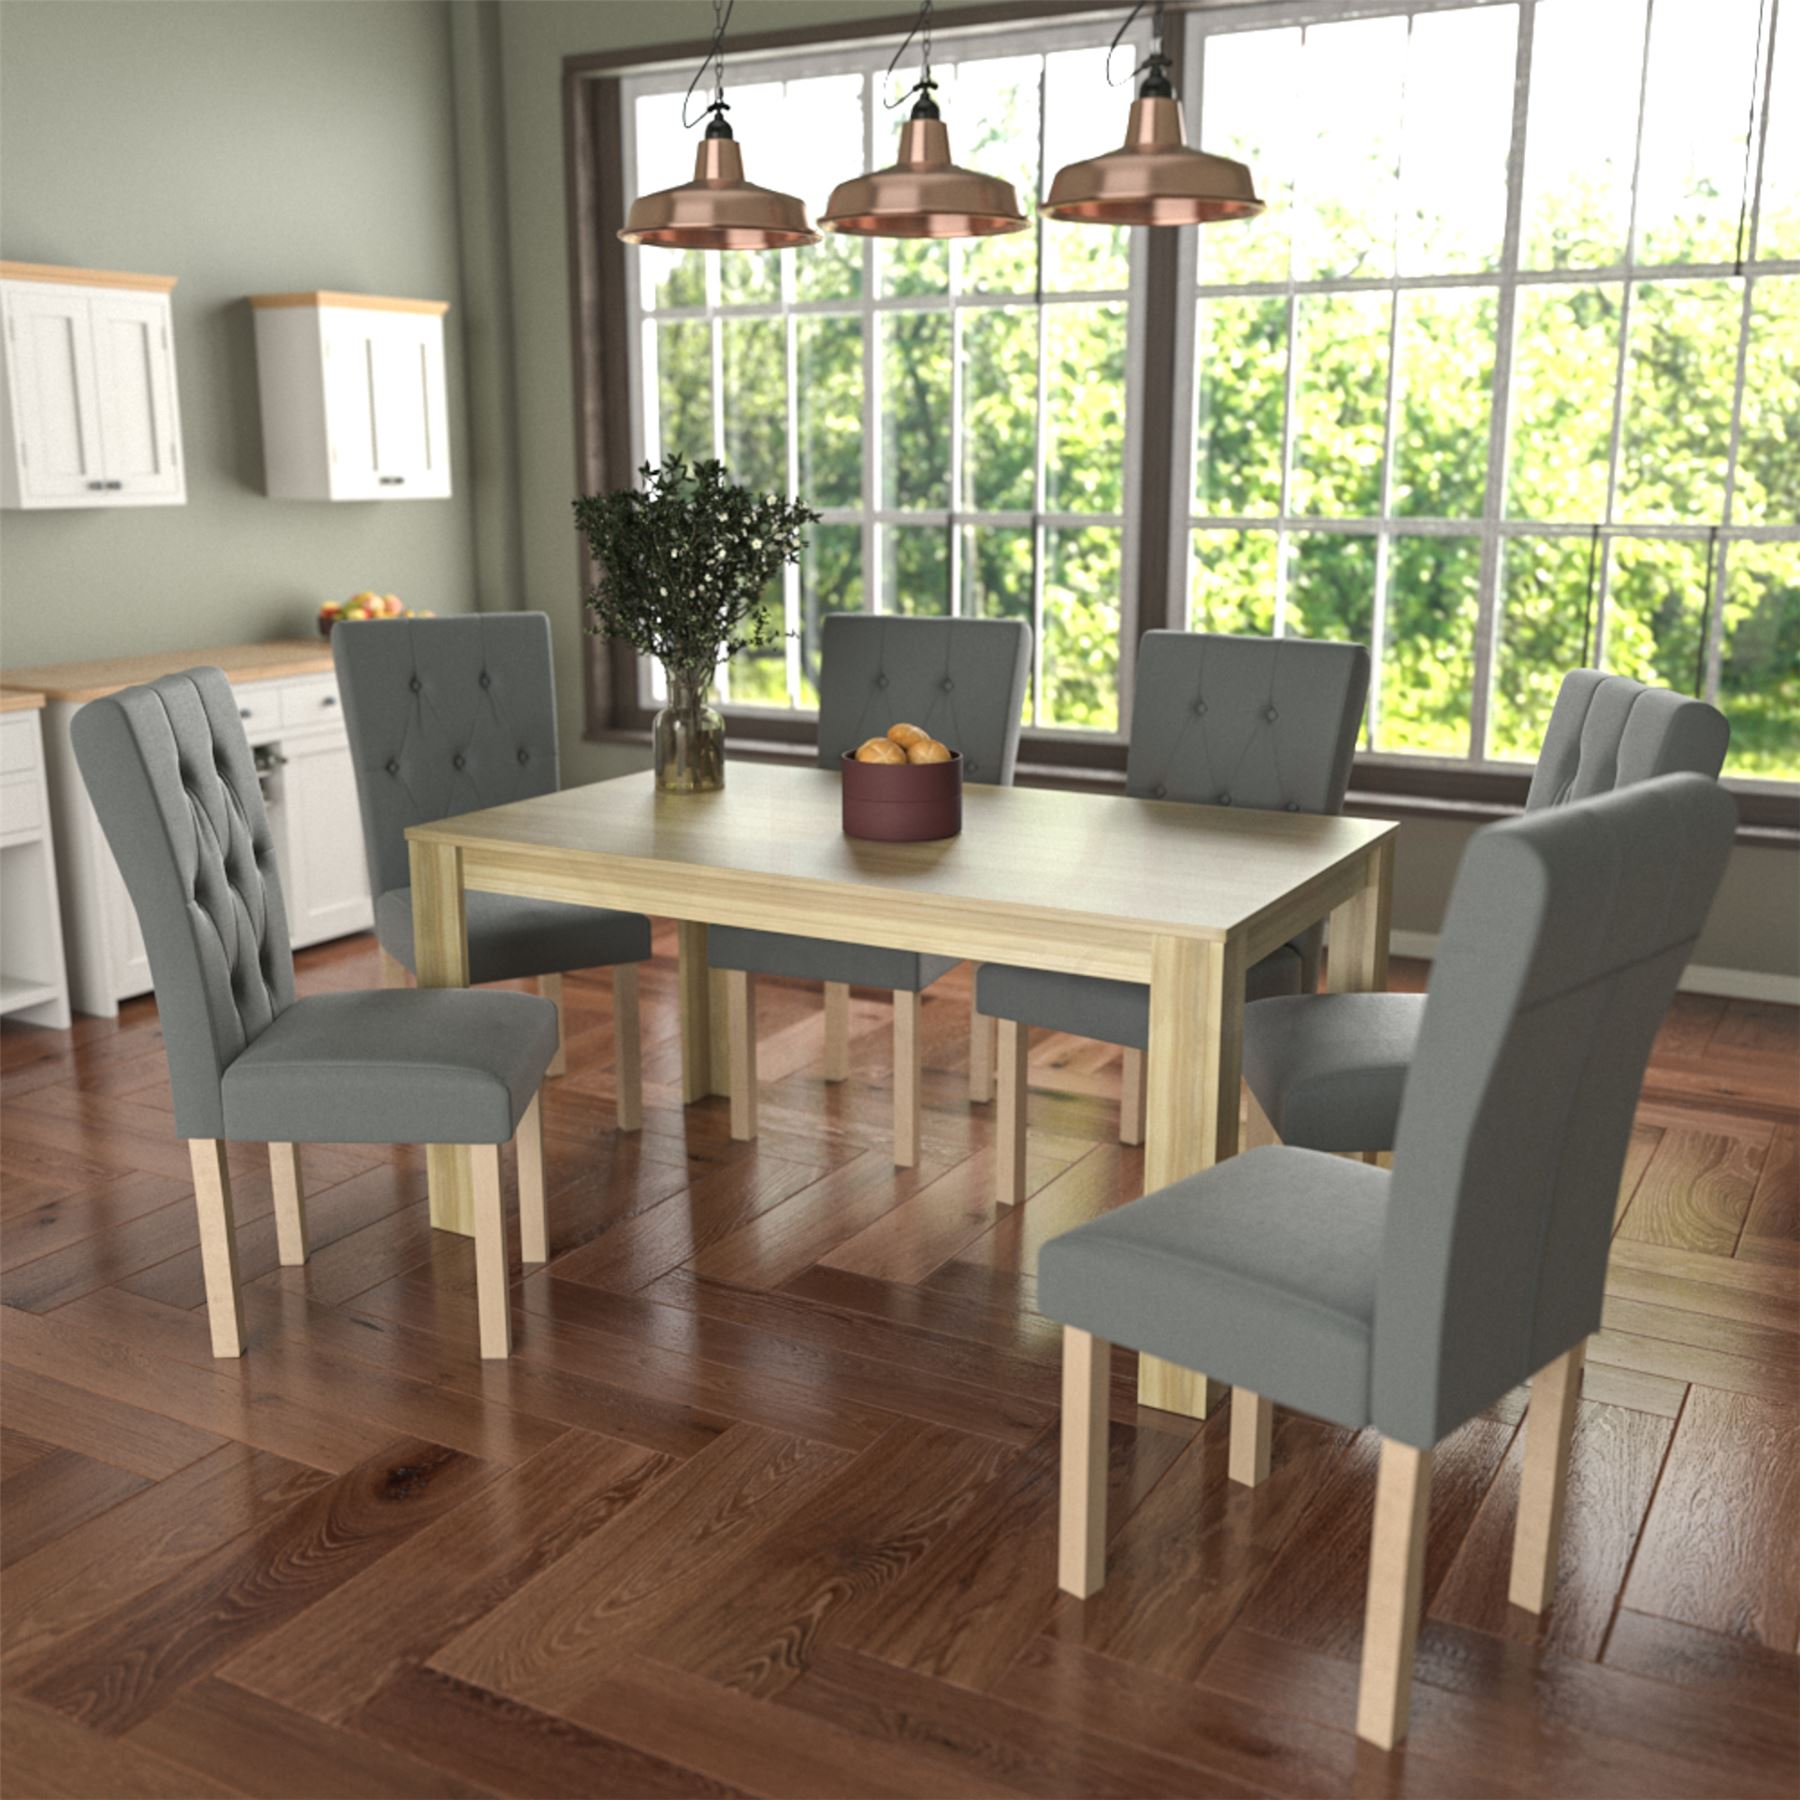 Dining Room Chair Fabric Details About Dining Table 6 Chairs Fabric Seat Kitchen Dining Room Furniture Set Grey Oak